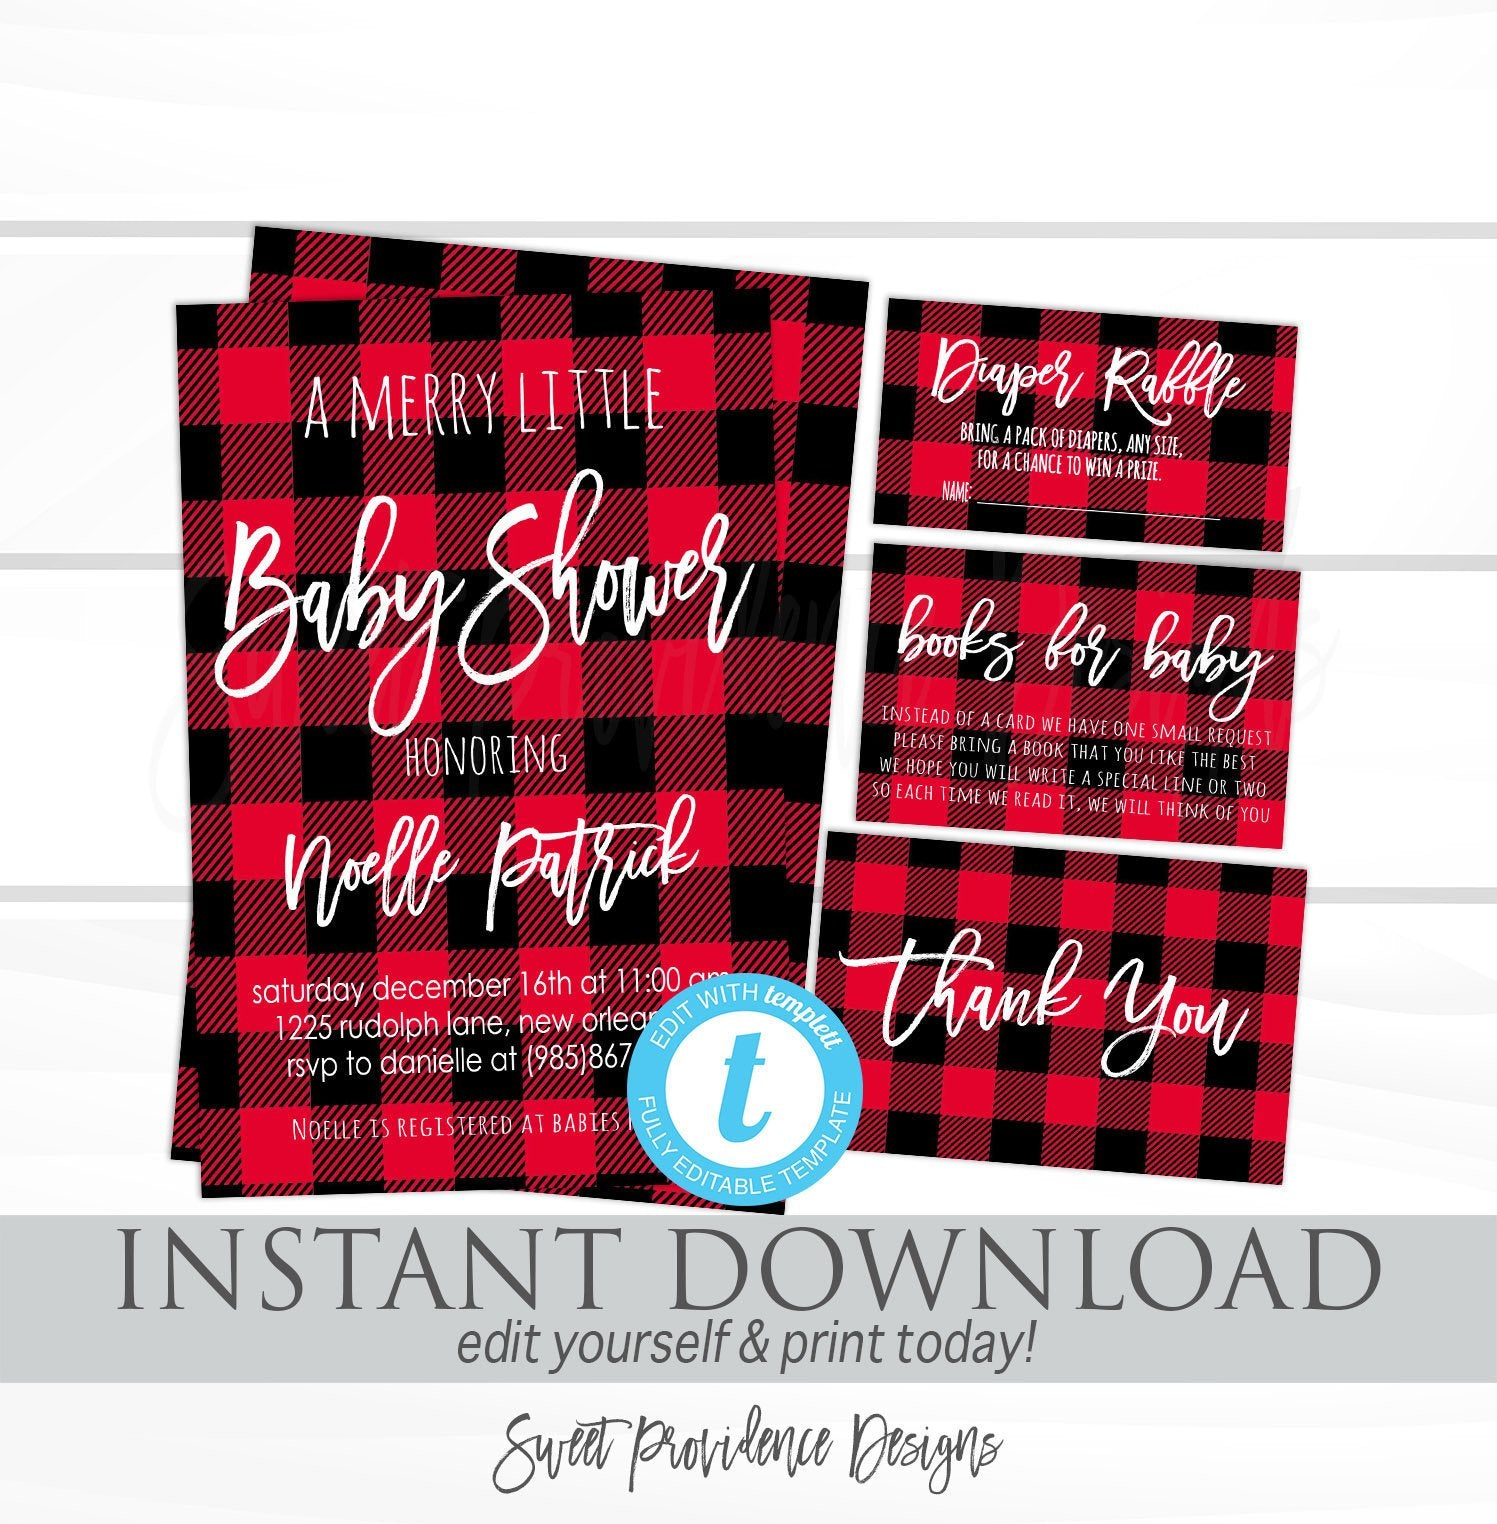 Buffalo Plaid Baby Shower Invitation Kit Editable Template Merry